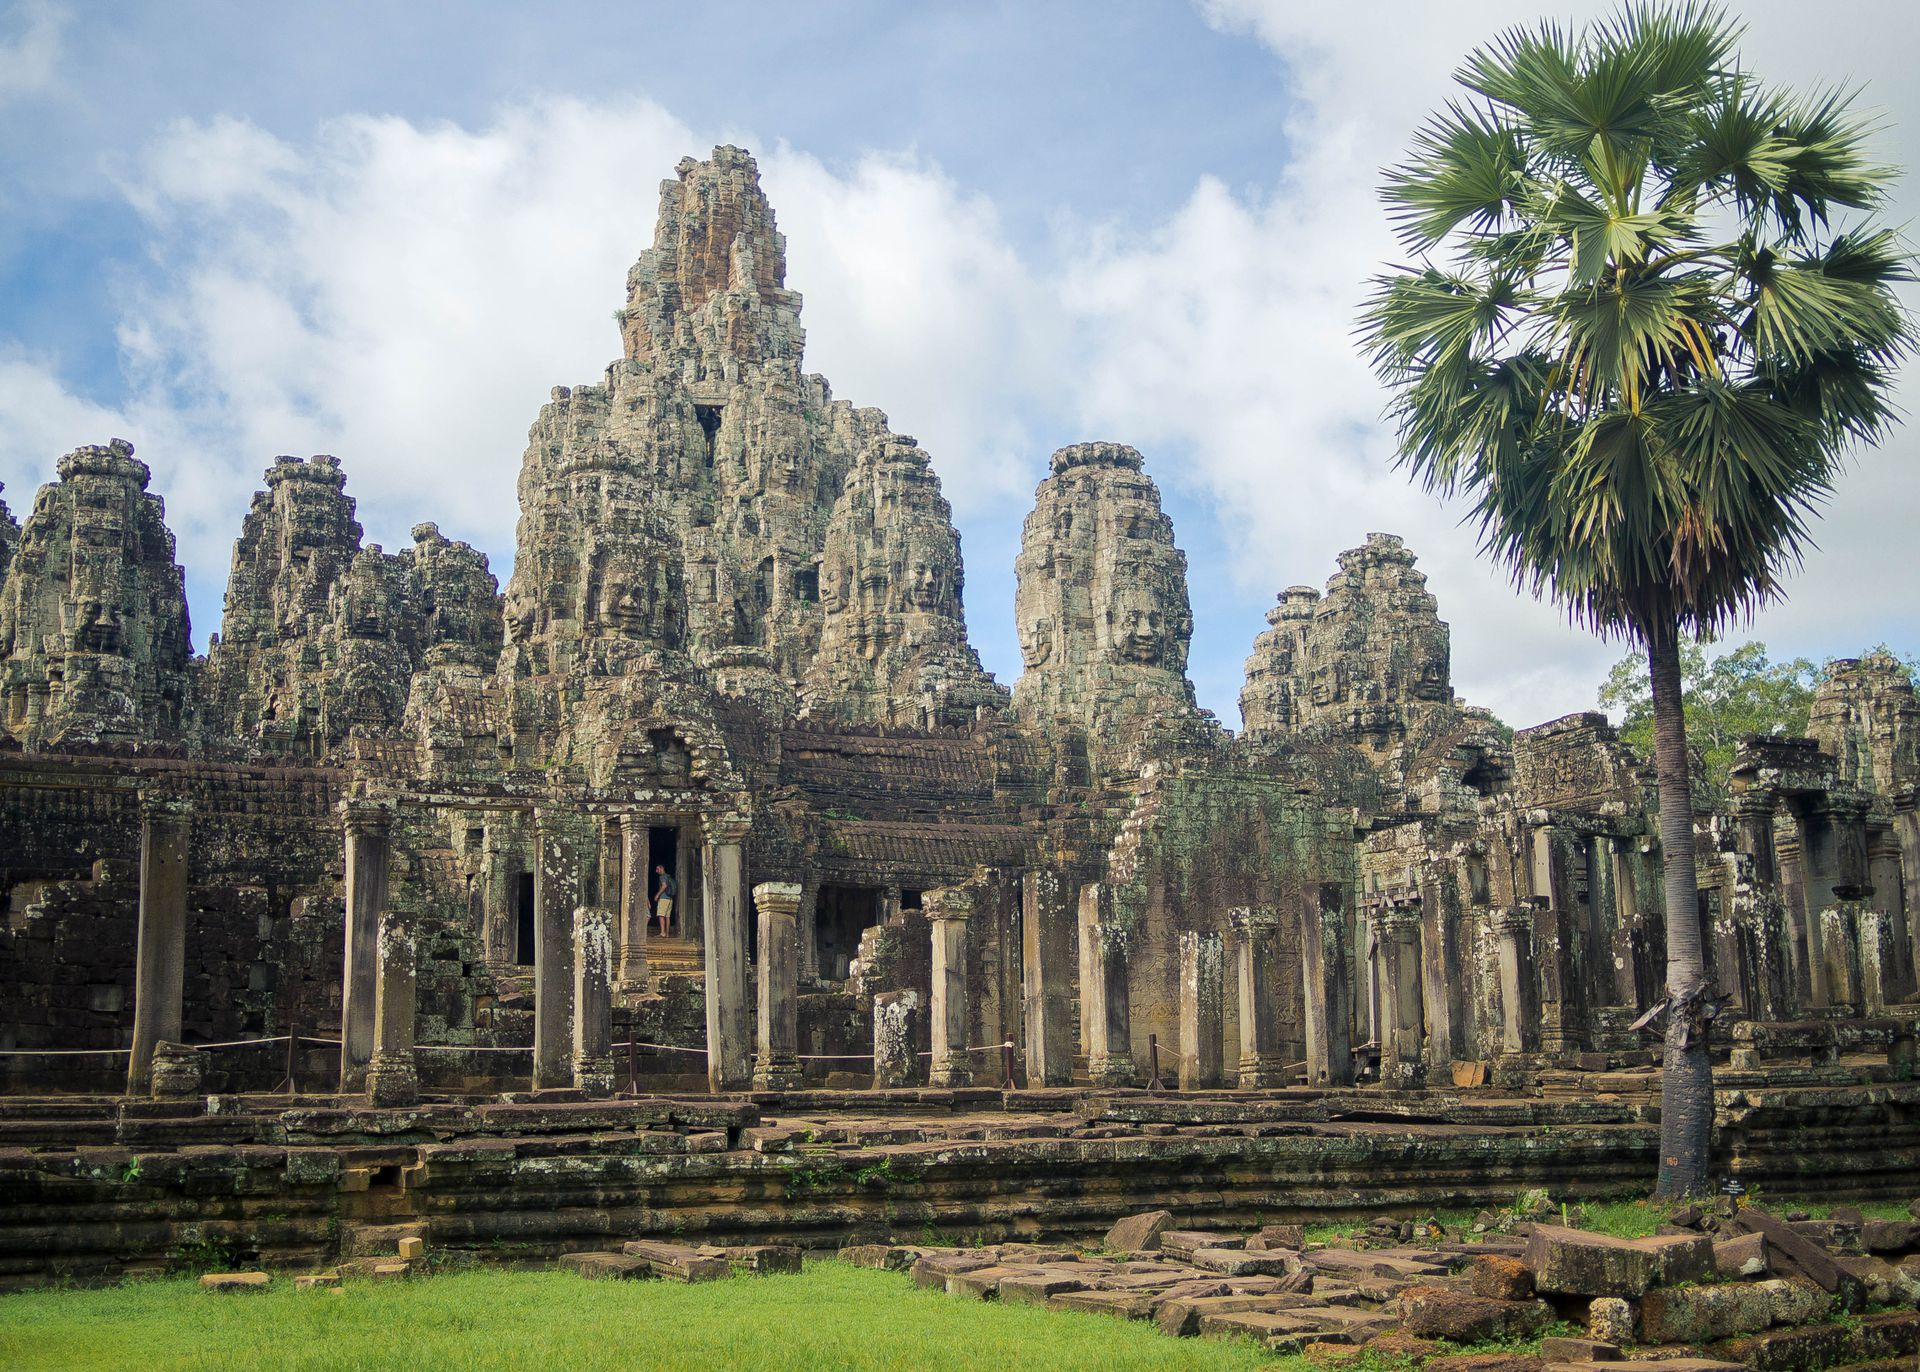 bayon-temple-siem-reap-angkor-wat-cambodia-face-temple-whole-picture-l